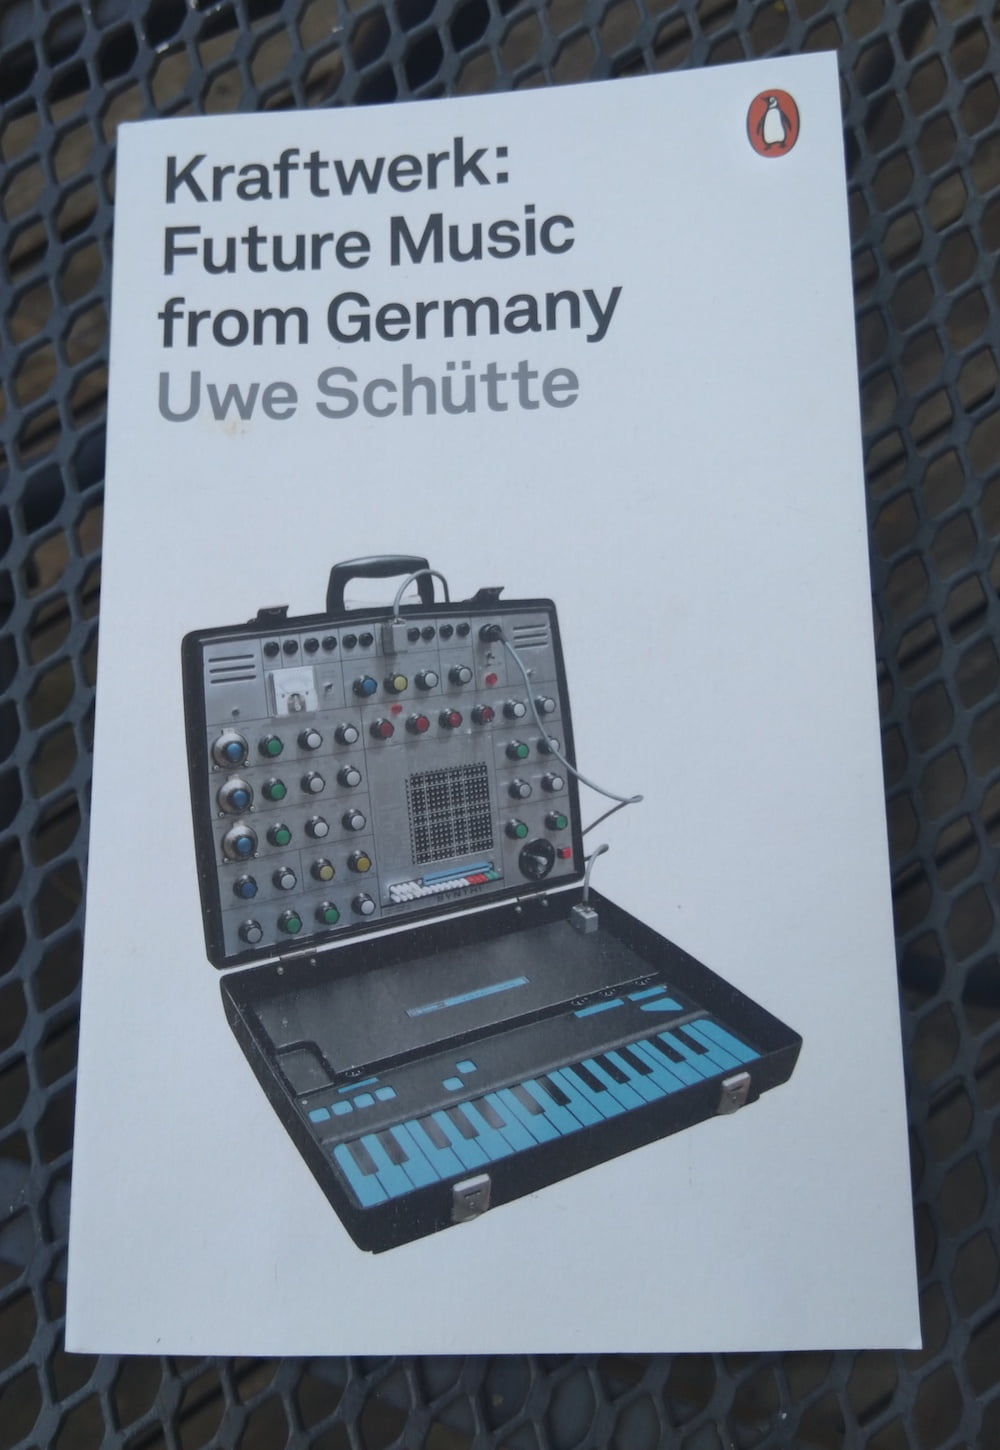 Paperback edition of Kraftwerk: Future Music From Germany. It has a picture of a synthesiser in a suitcase.